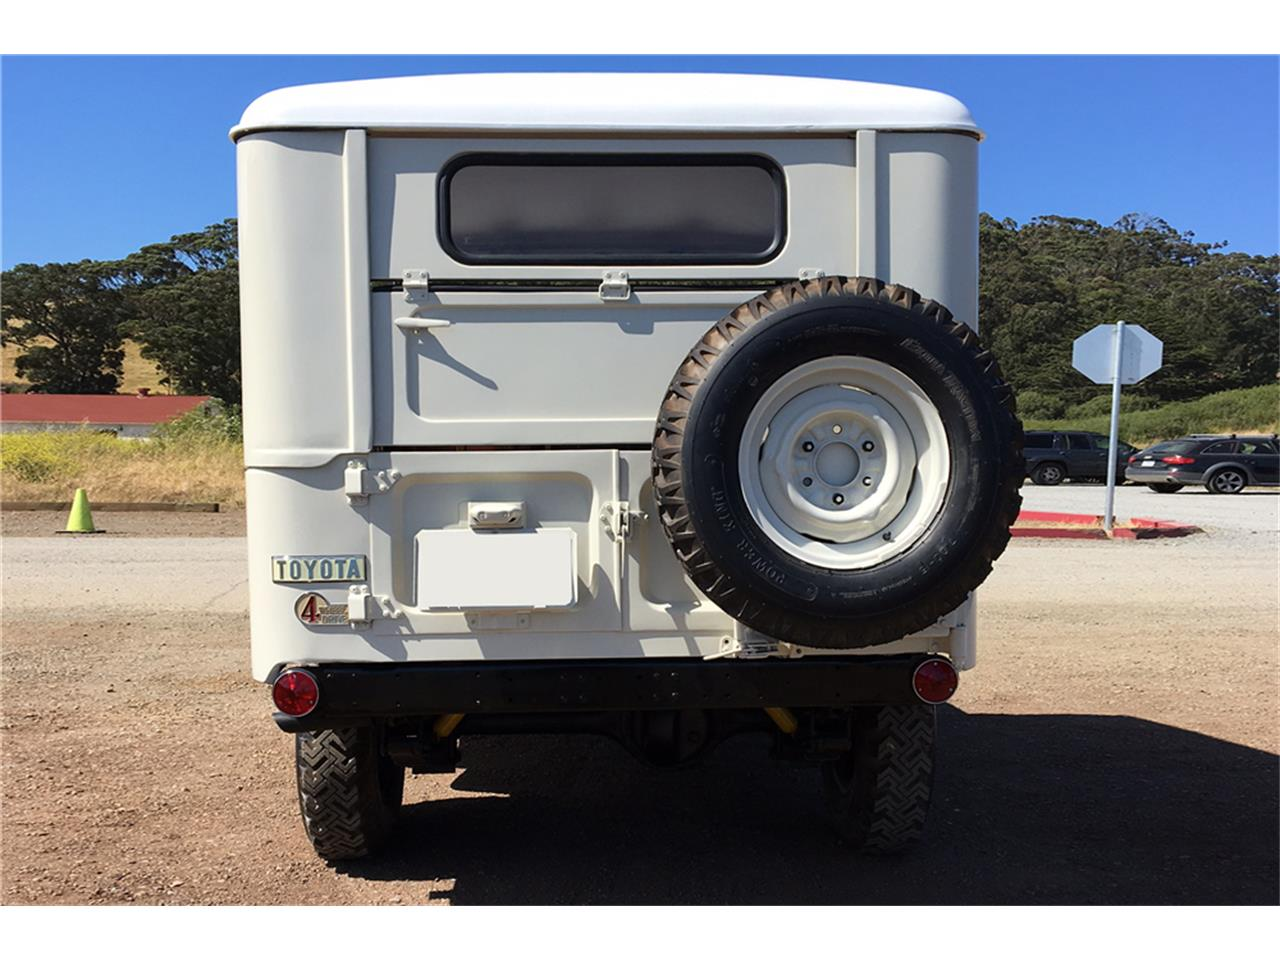 For Sale: 1965 Toyota Land Cruiser FJ40 in Redondo Beach, California